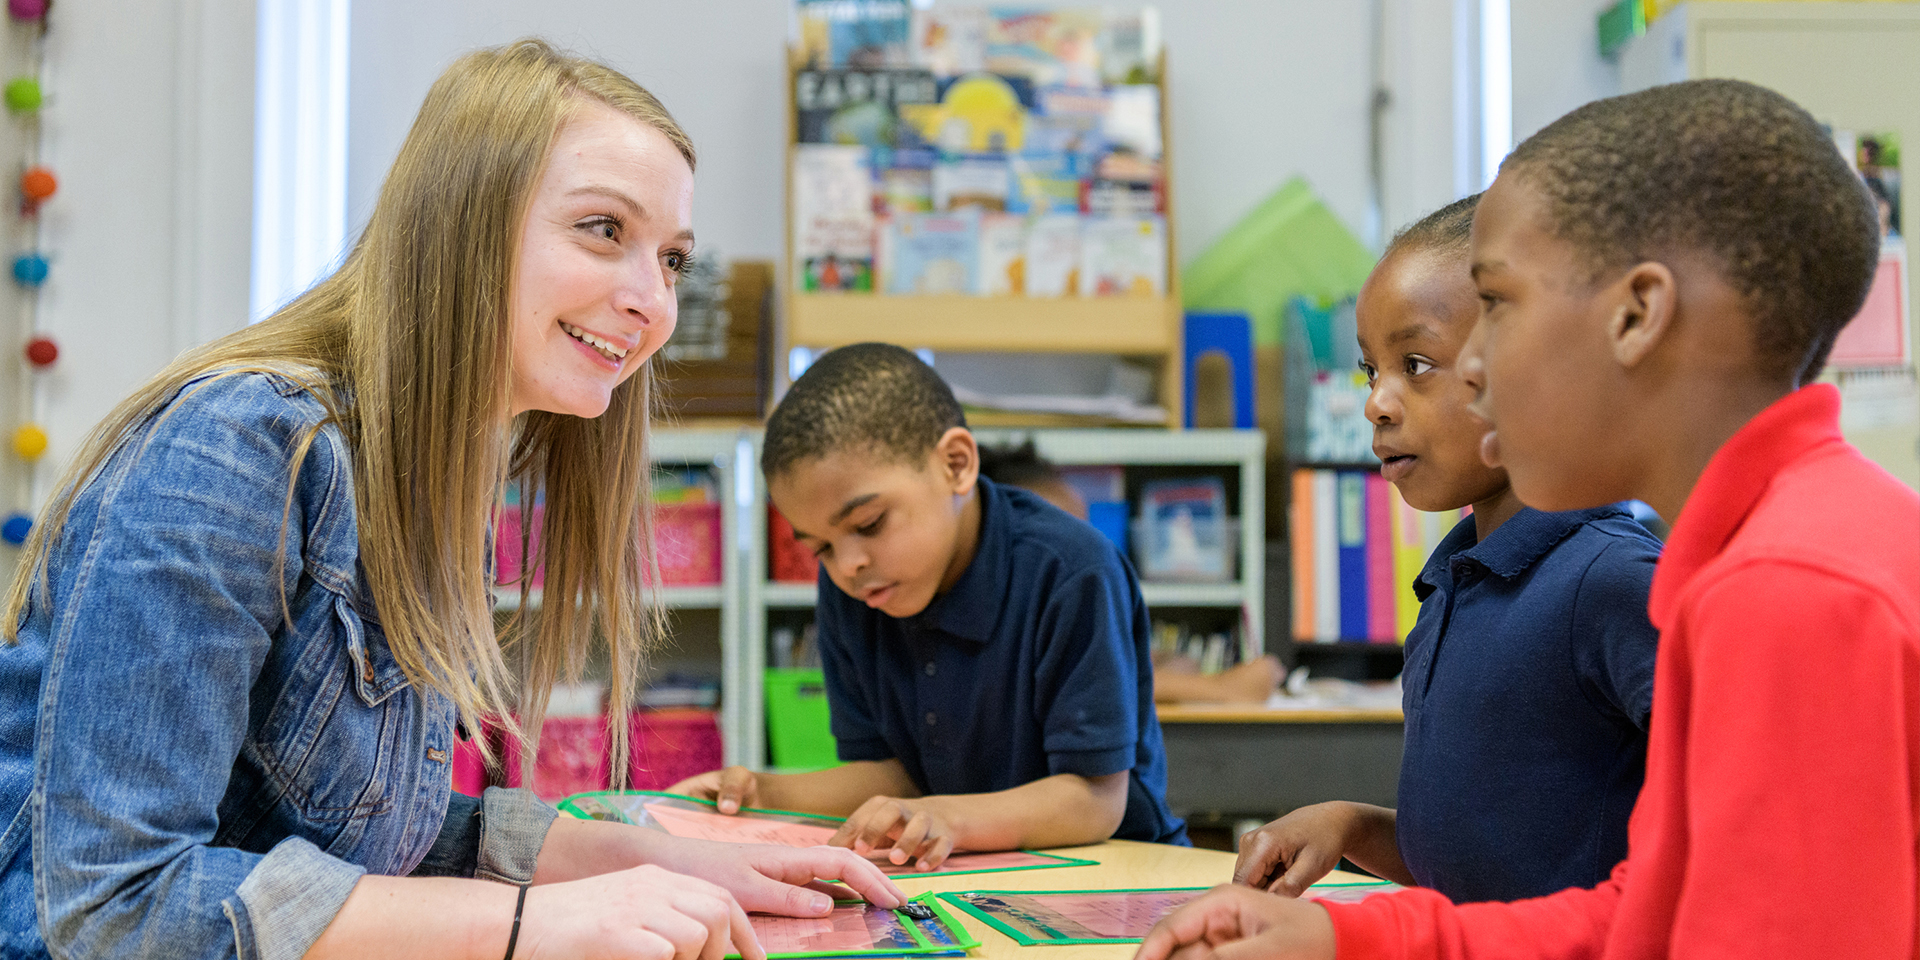 Student teacher helps students with an assignment